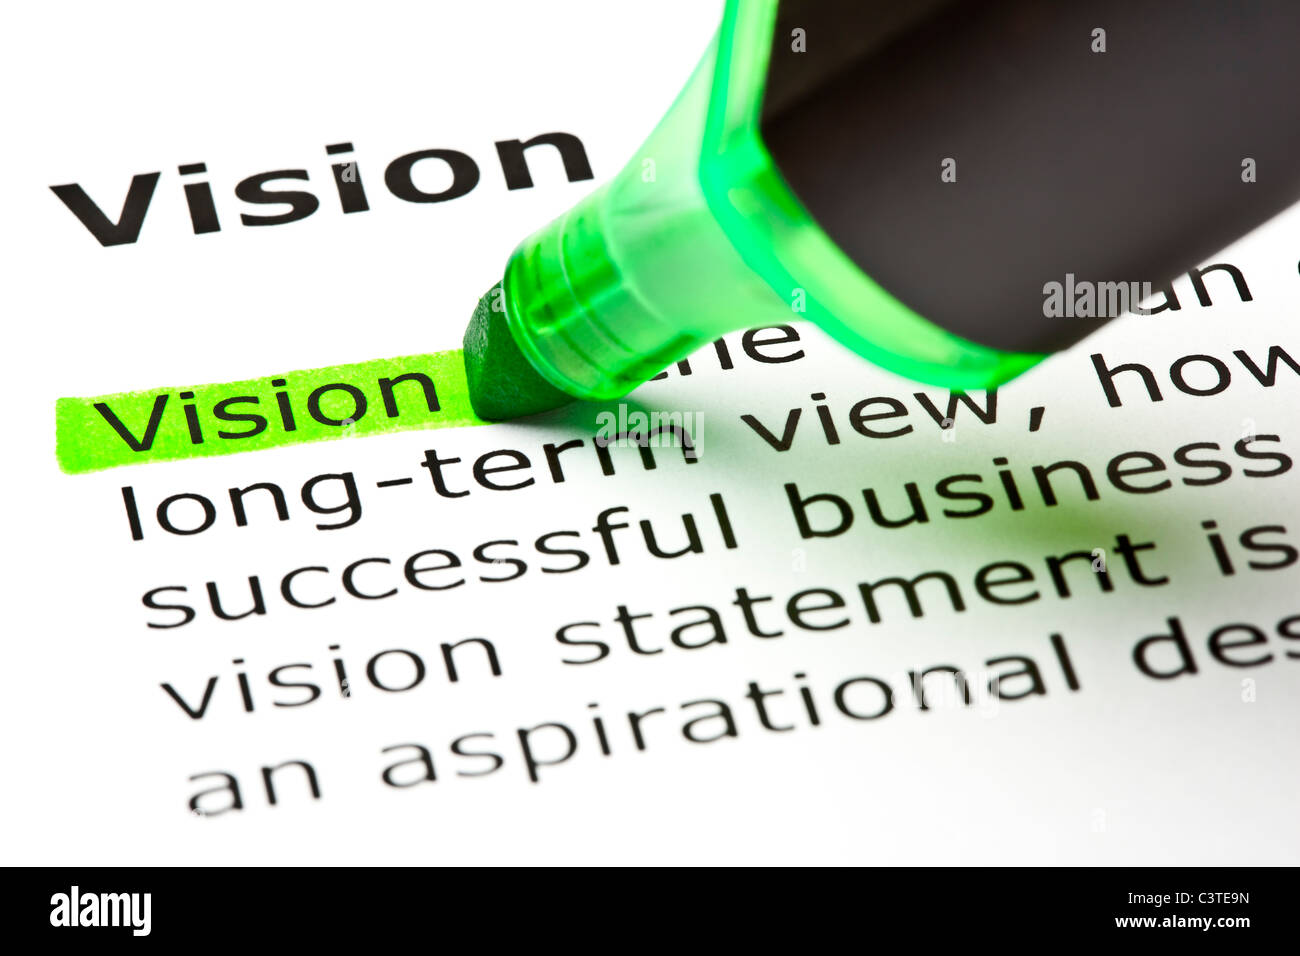 The word 'Vision' highlighted in green with felt tip pen Stock Photo